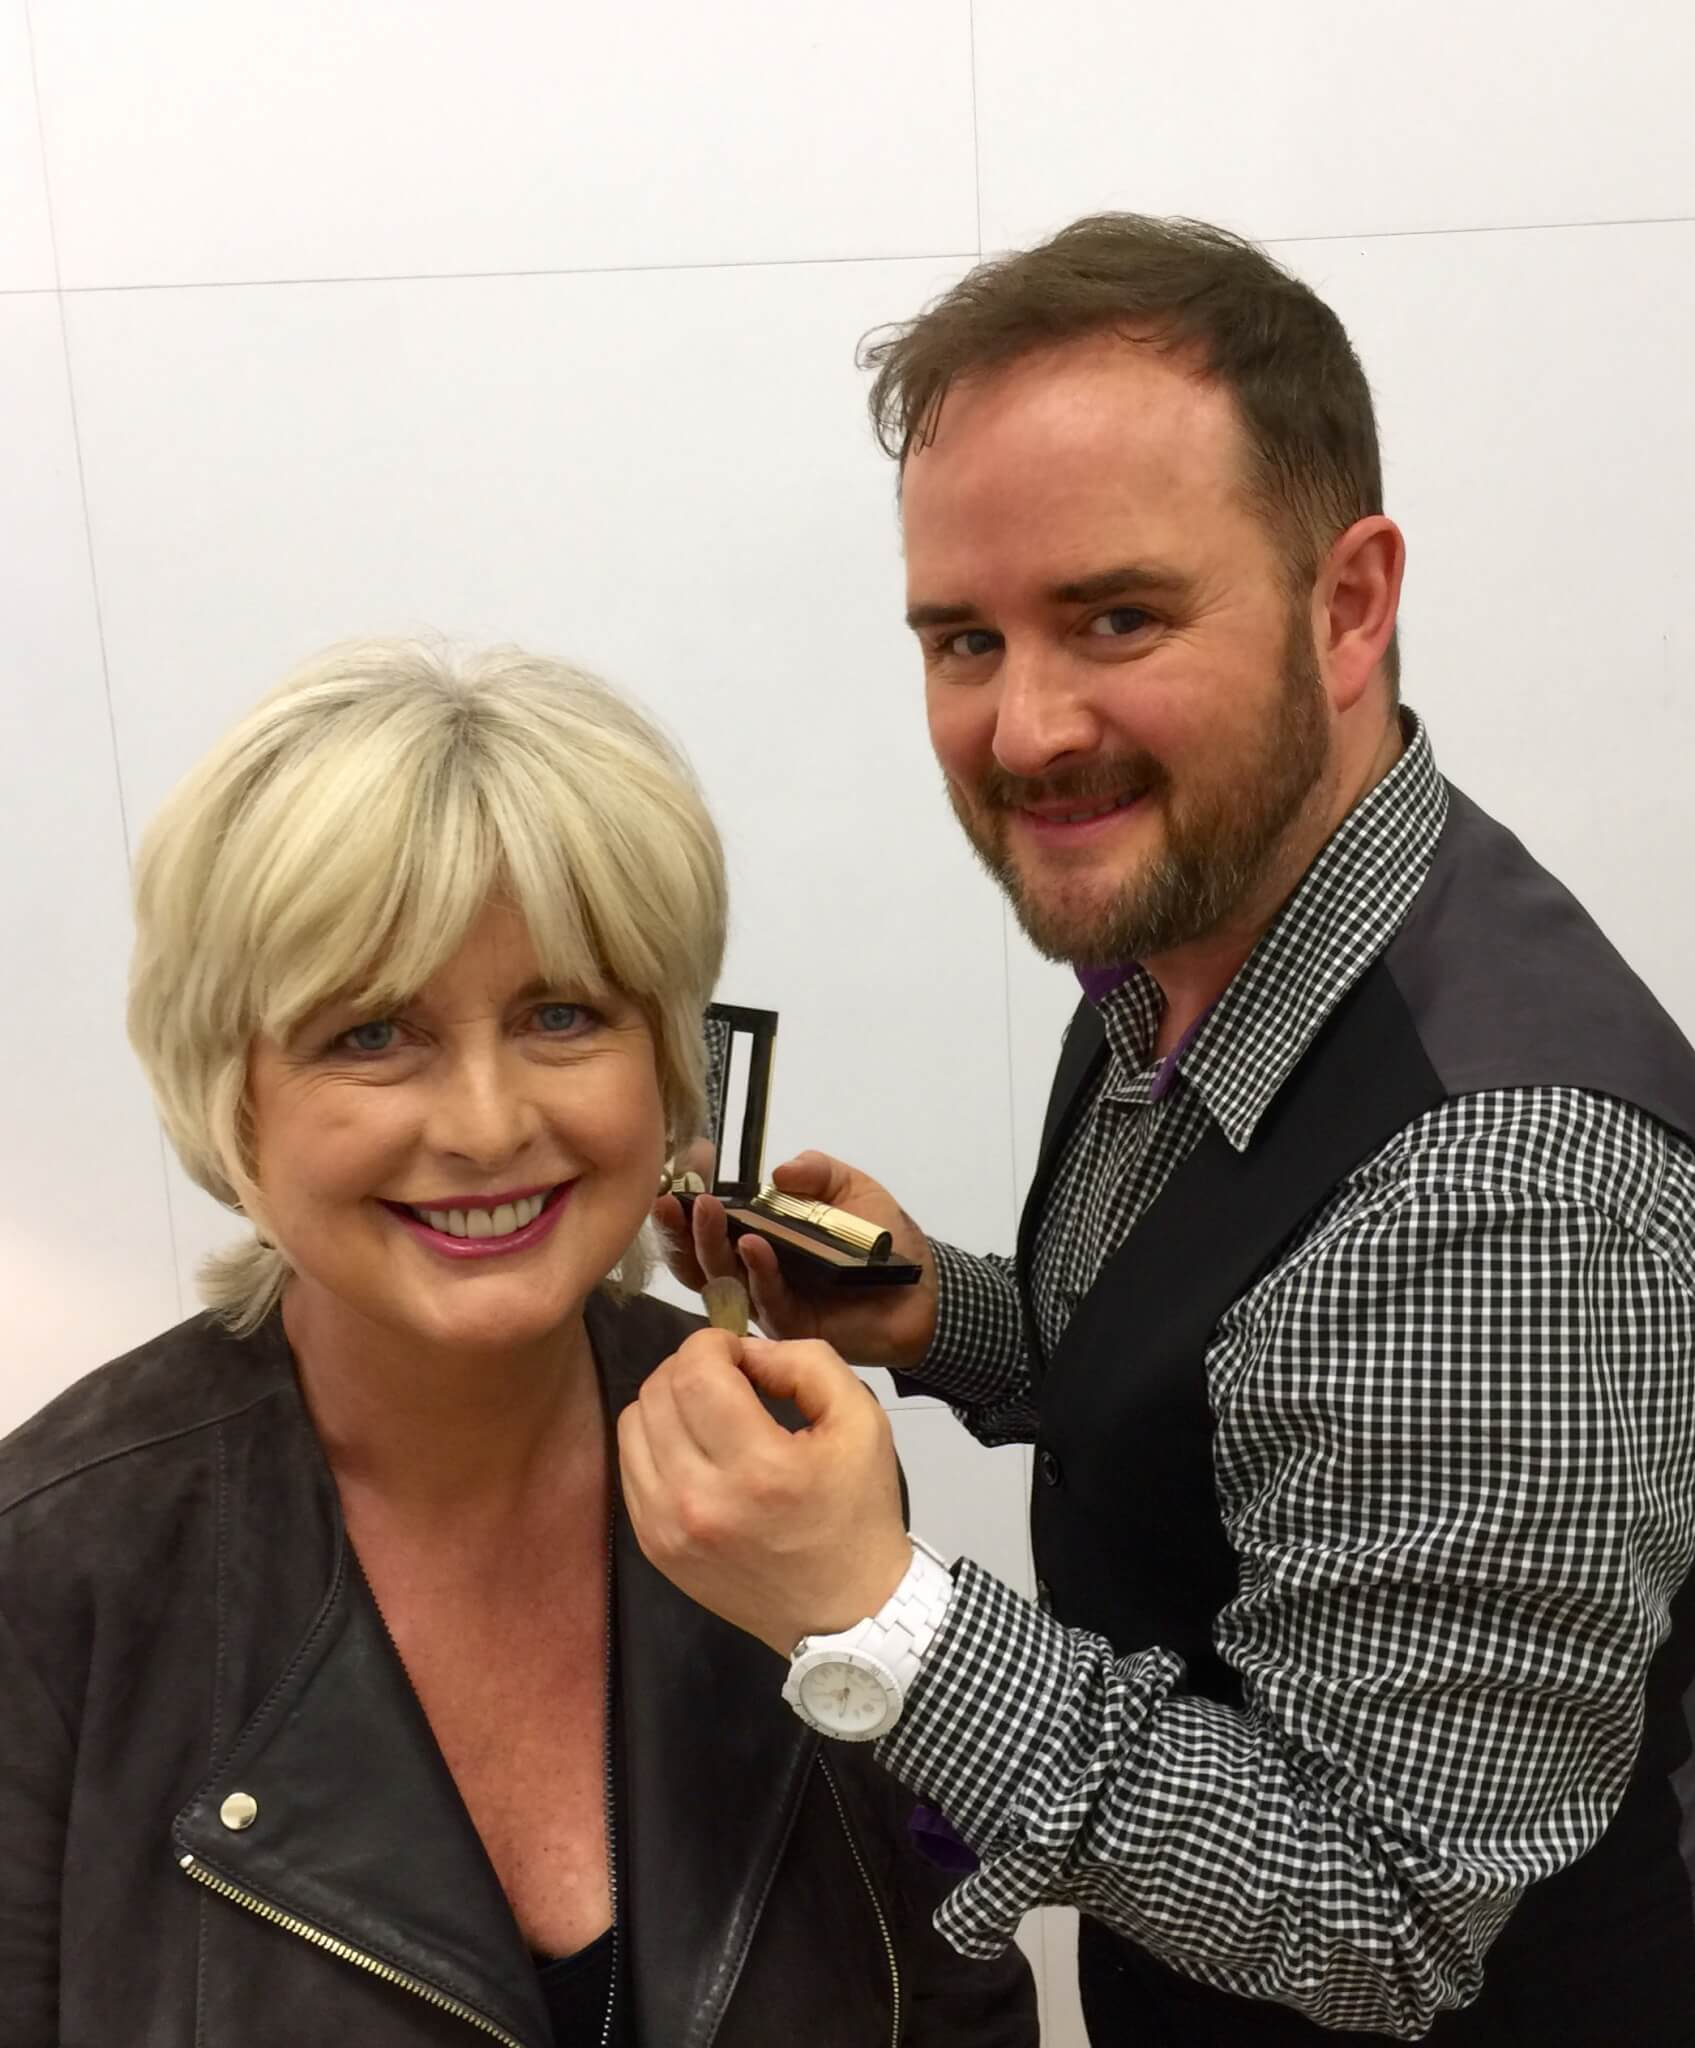 Alyn filming with Jane Felstead from Made in Chelsea